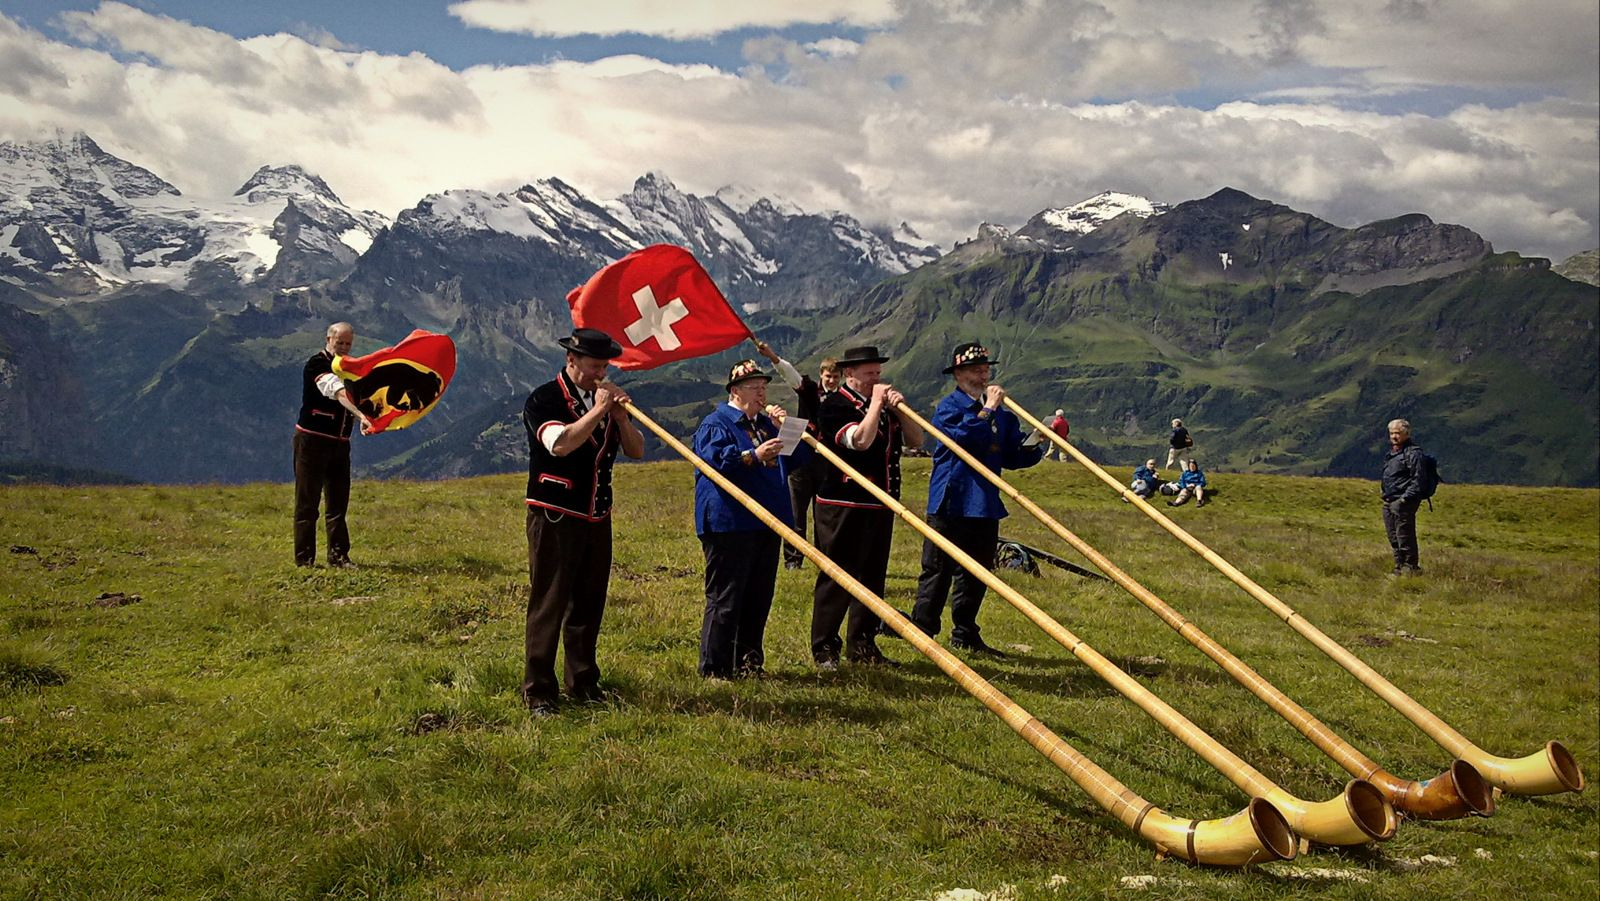 Traditional Symbols Of Switzerland The Swiss Flag The Alphorn And